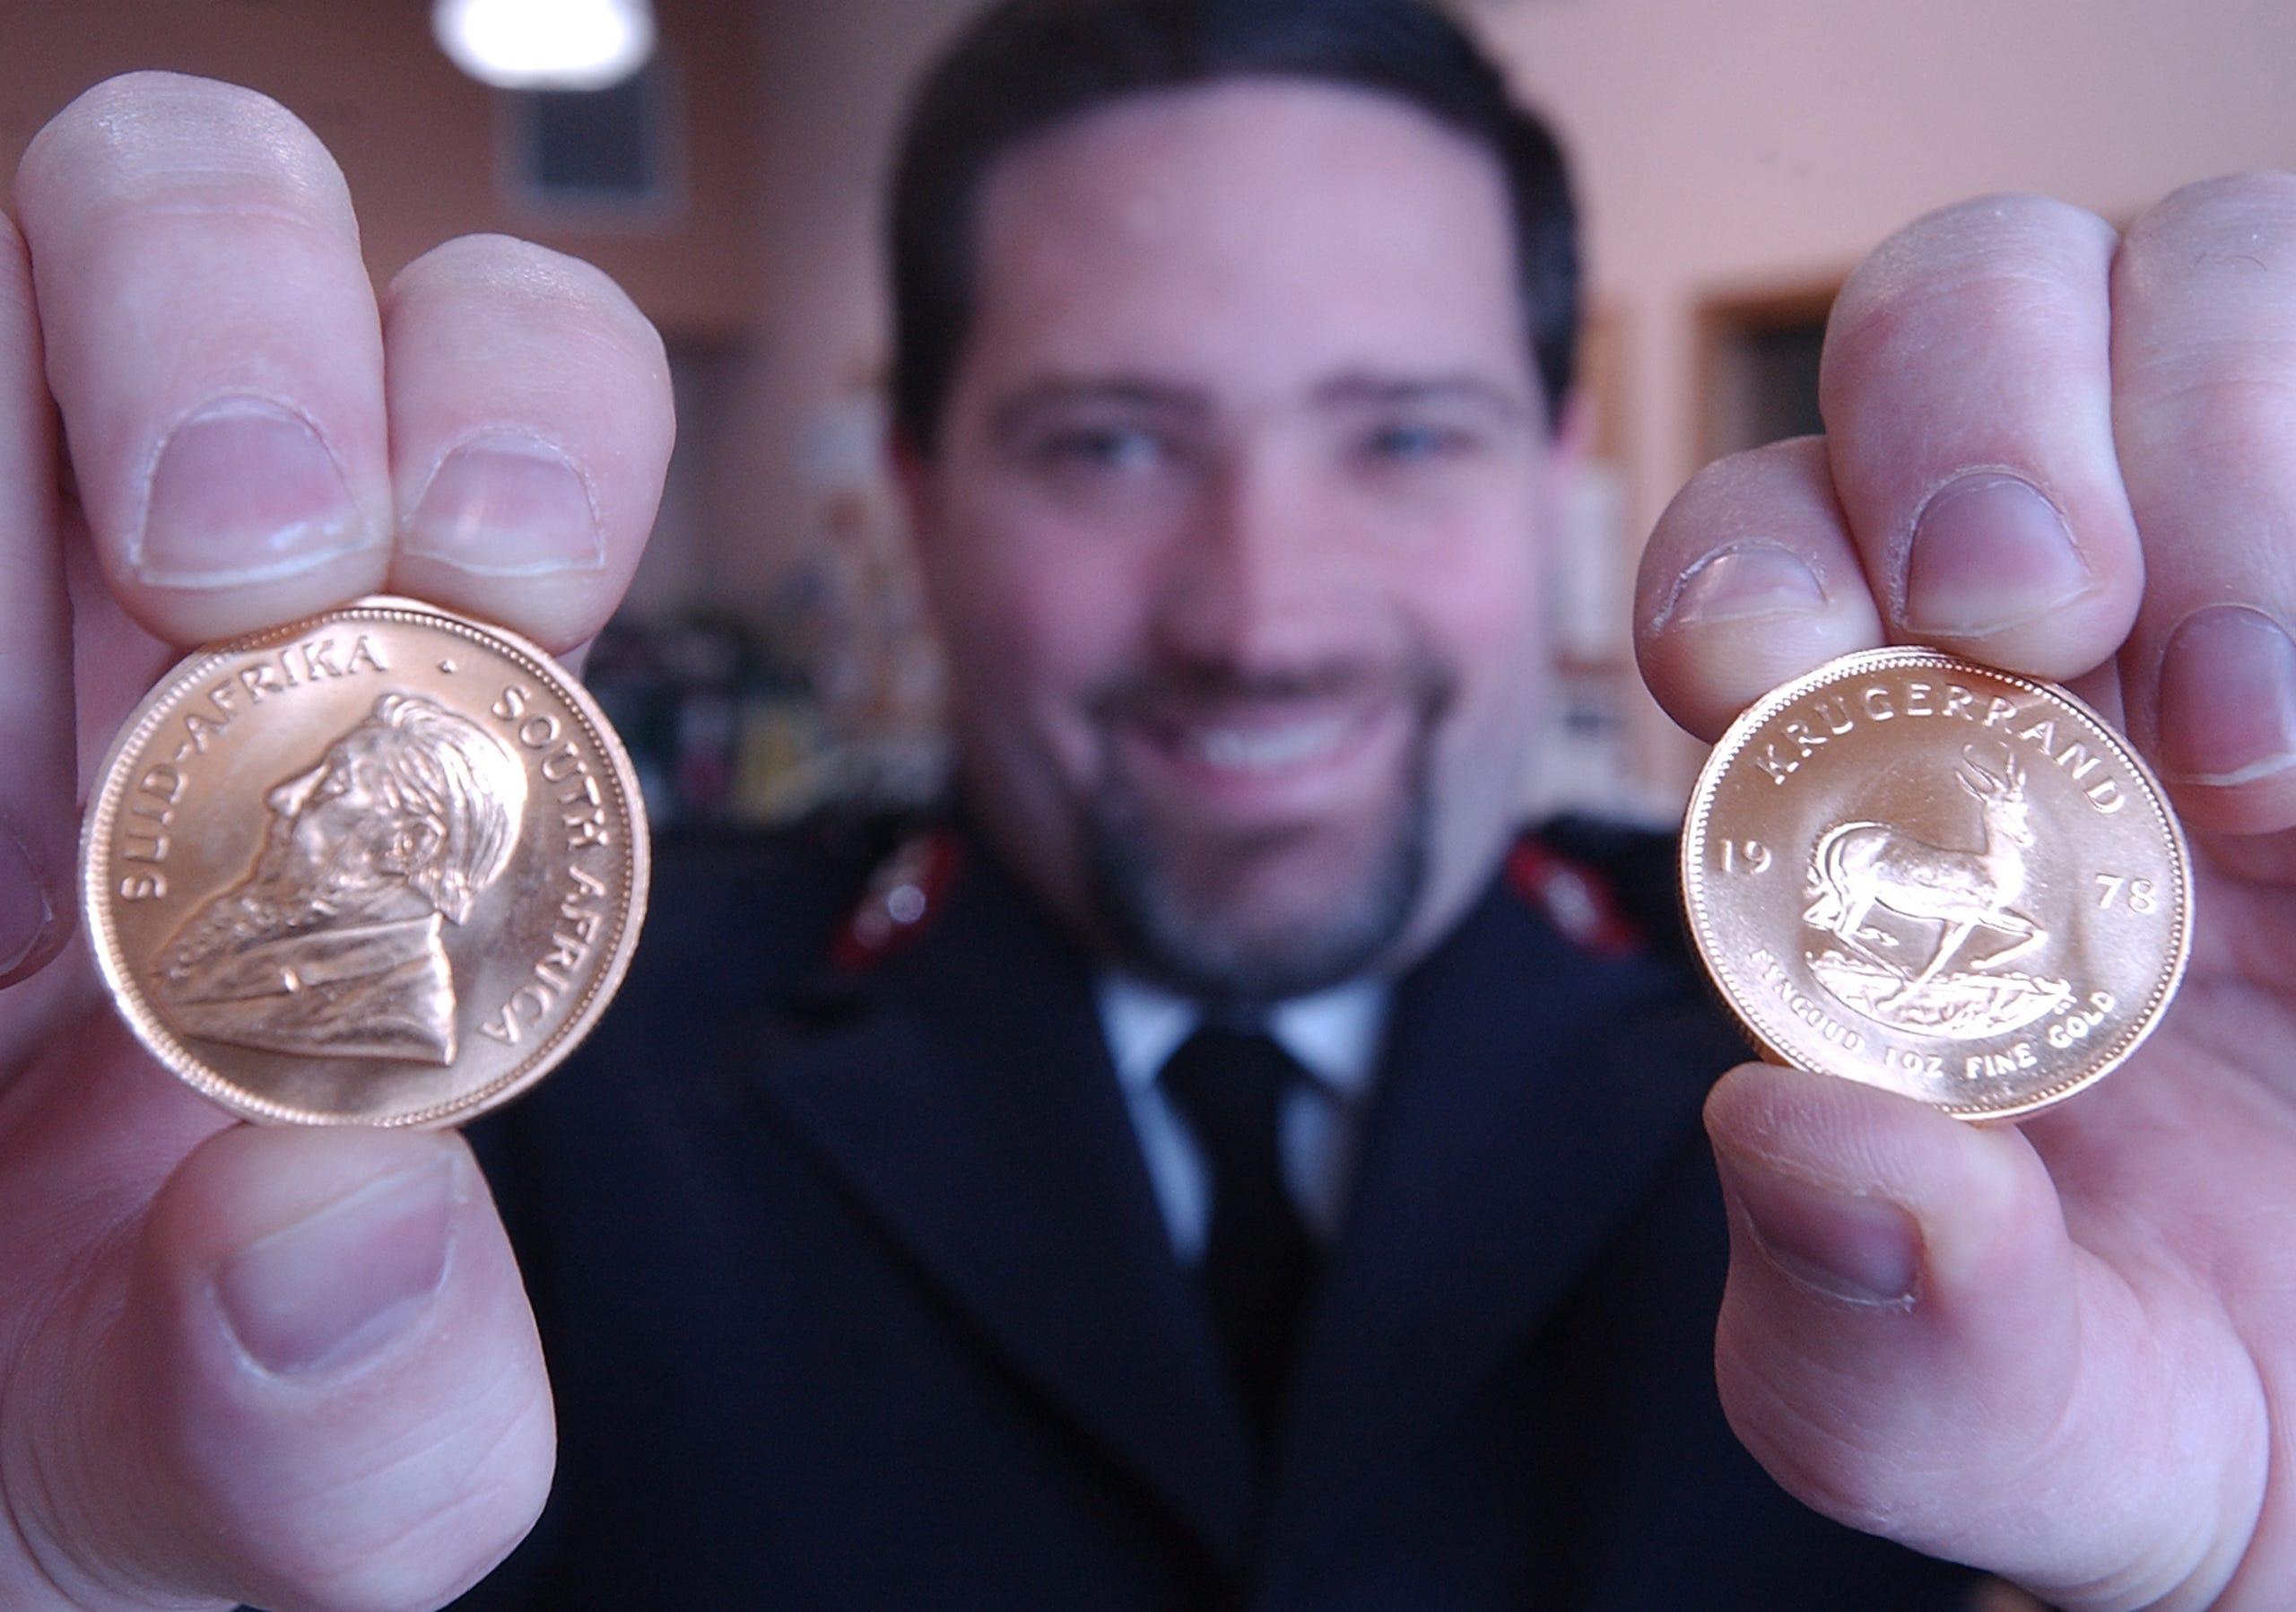 Photos Fort Collins Mystery Krugerrand Donor